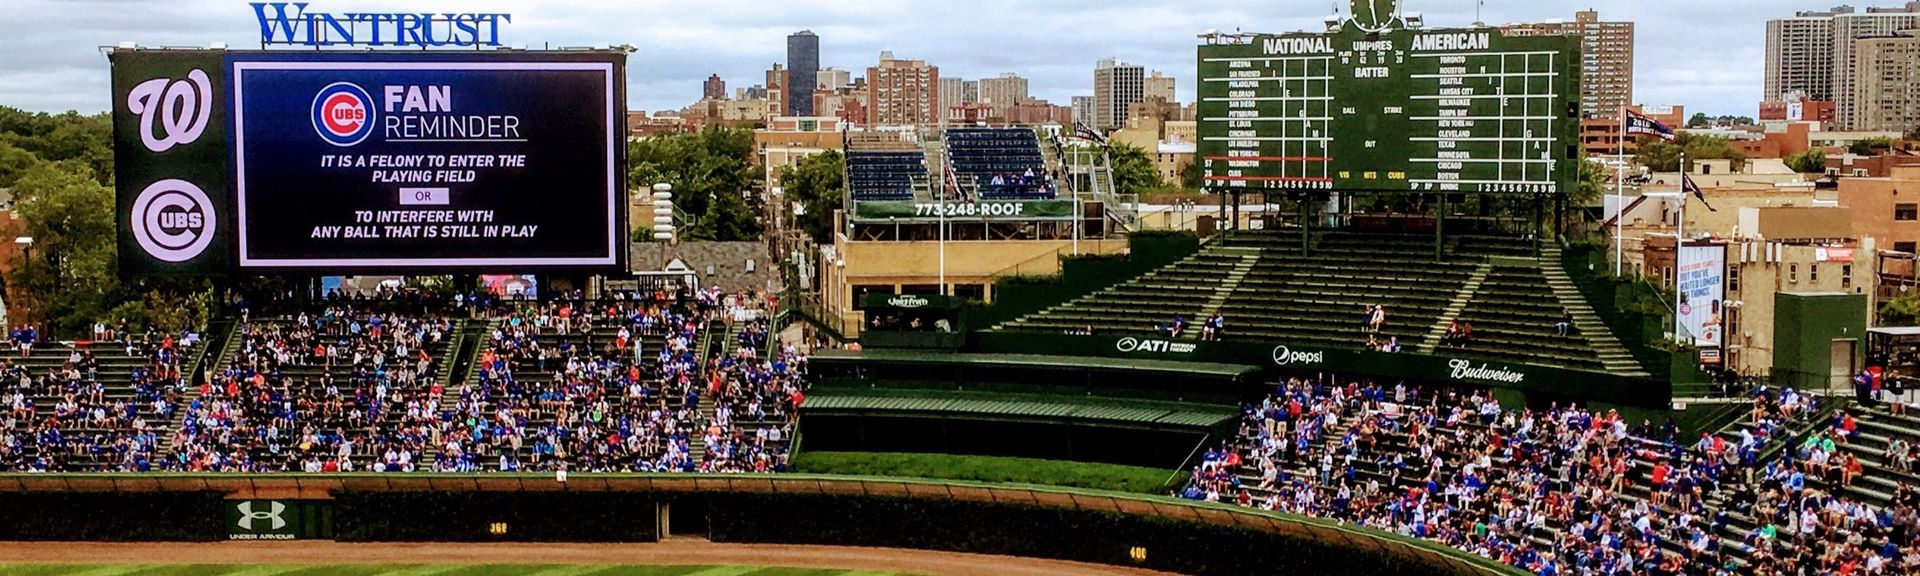 Wrigley Field, Chicago, Illinois, United States of America